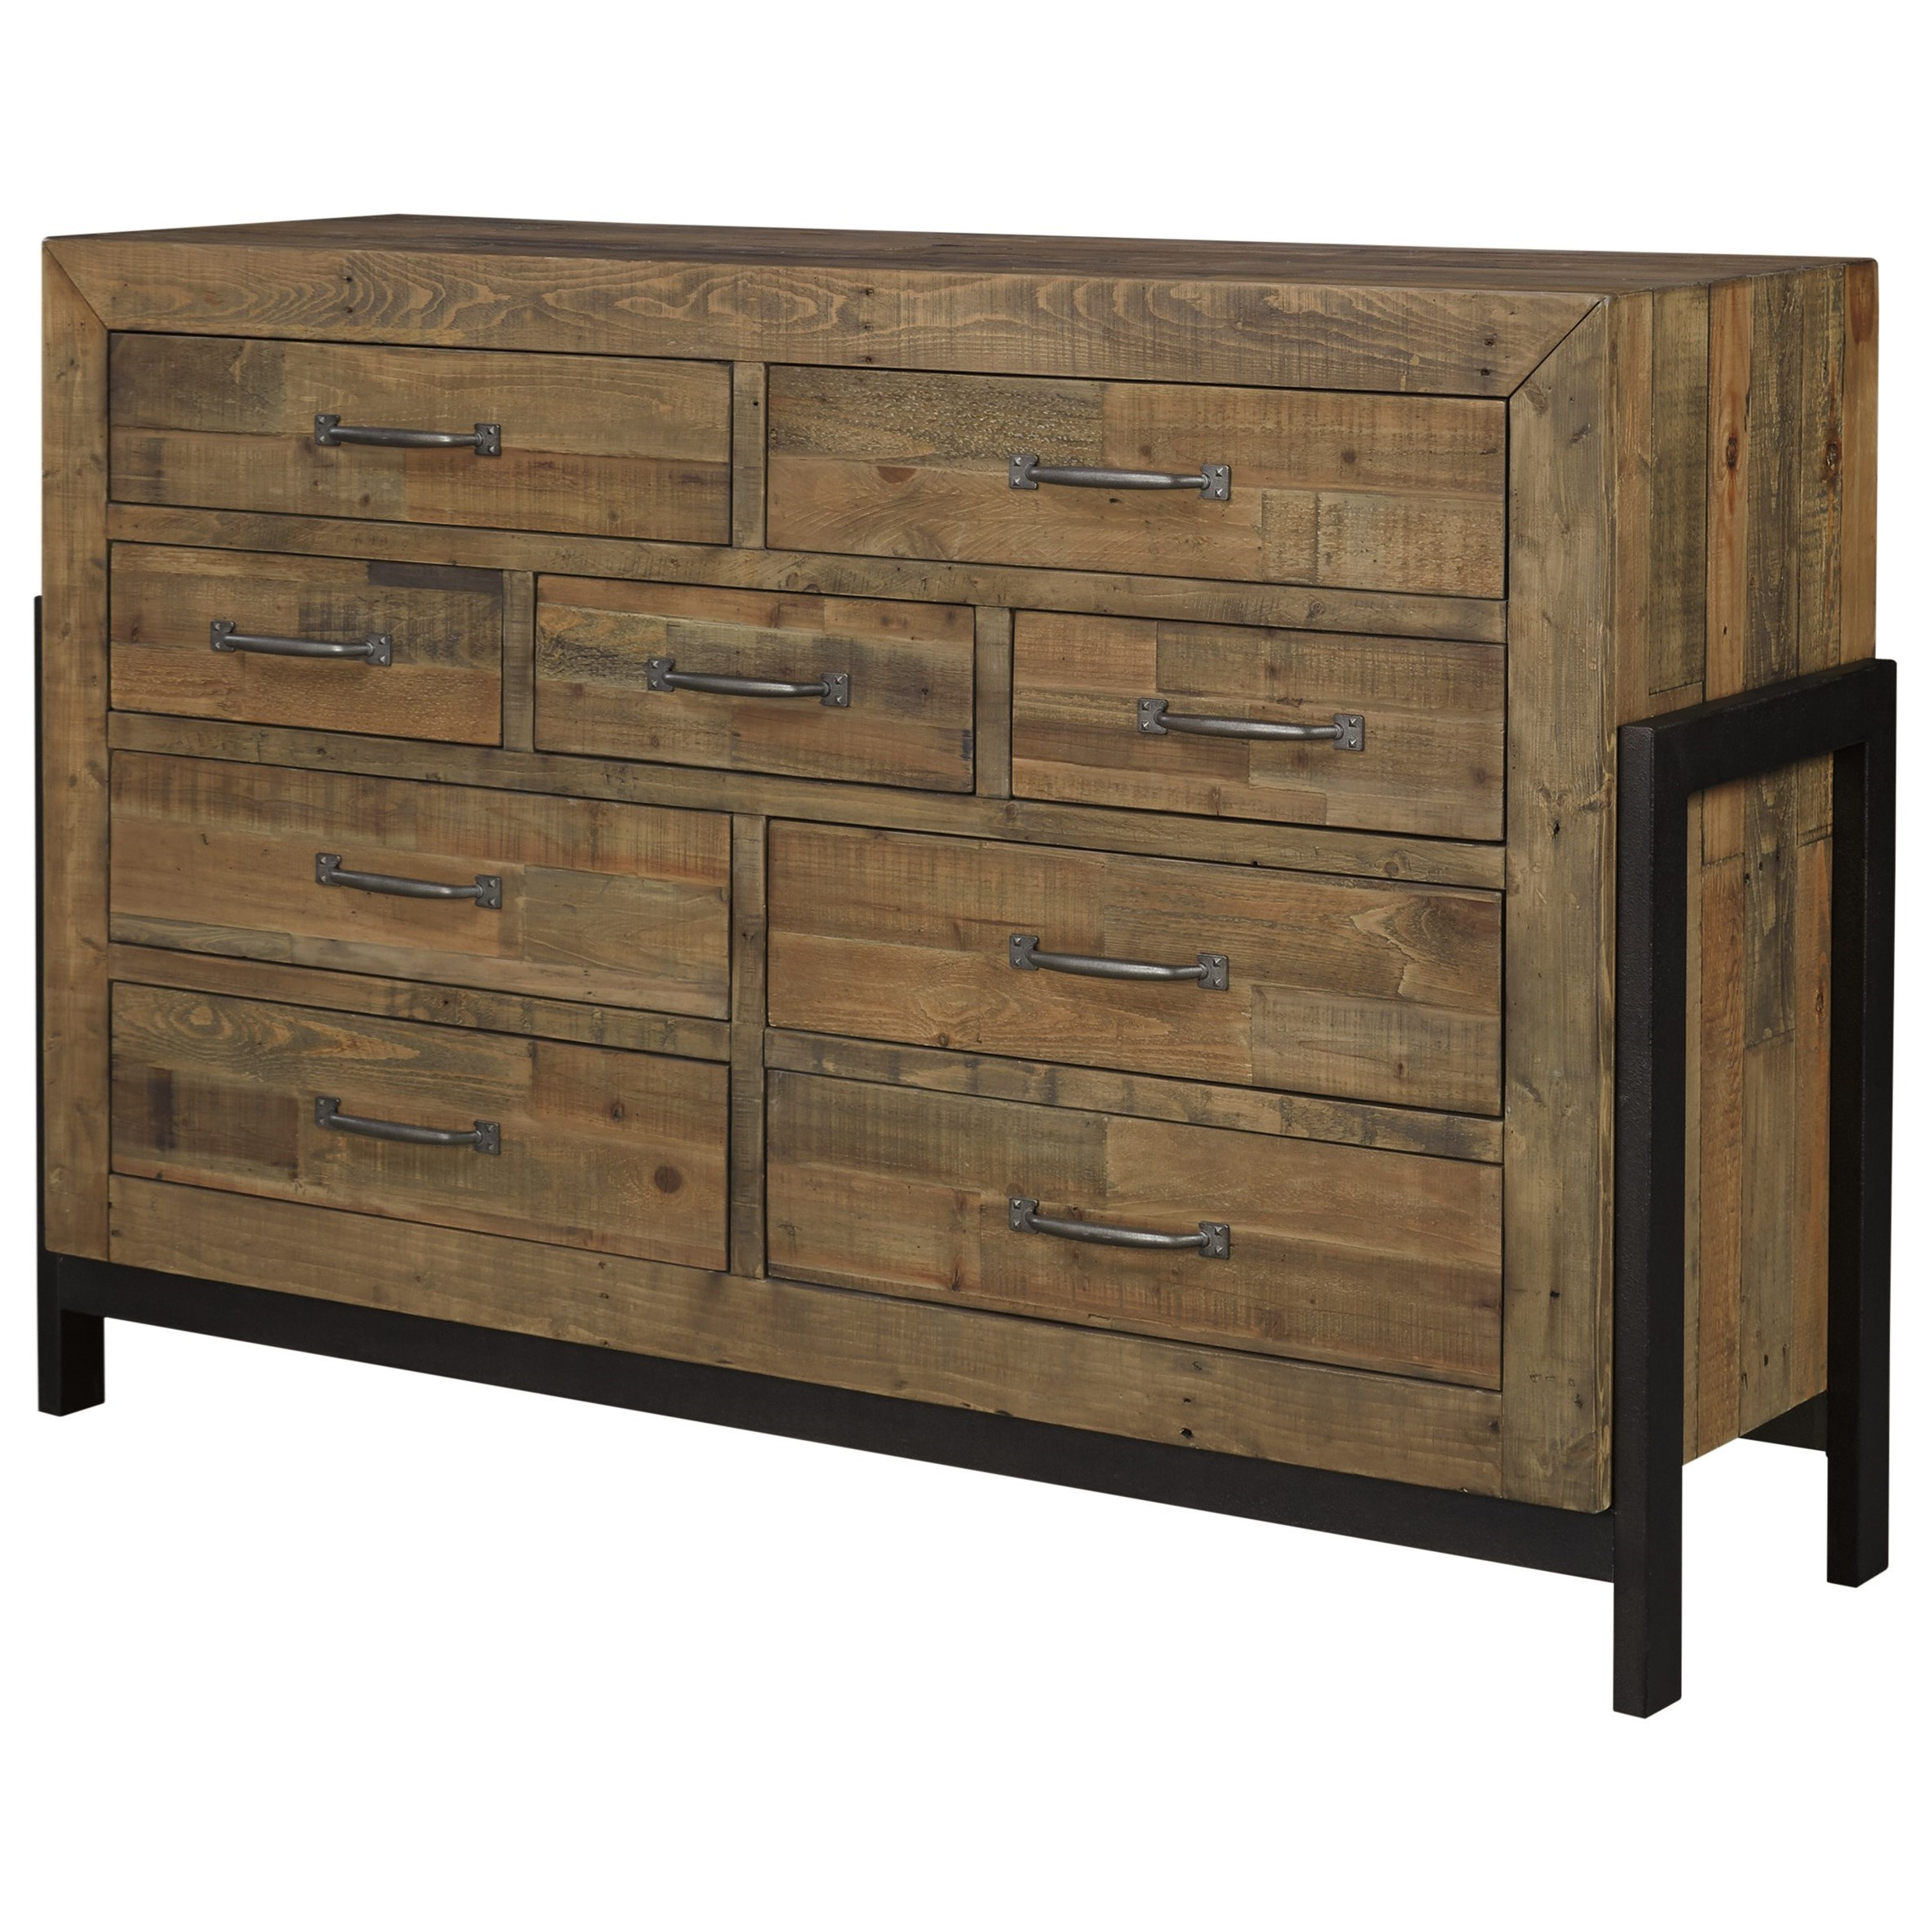 Reclaimed Pine Solid Wood Dresser With Metal Framesignature Regarding Most Up To Date Reclaimed Sideboards With Metal Panel (Gallery 20 of 20)